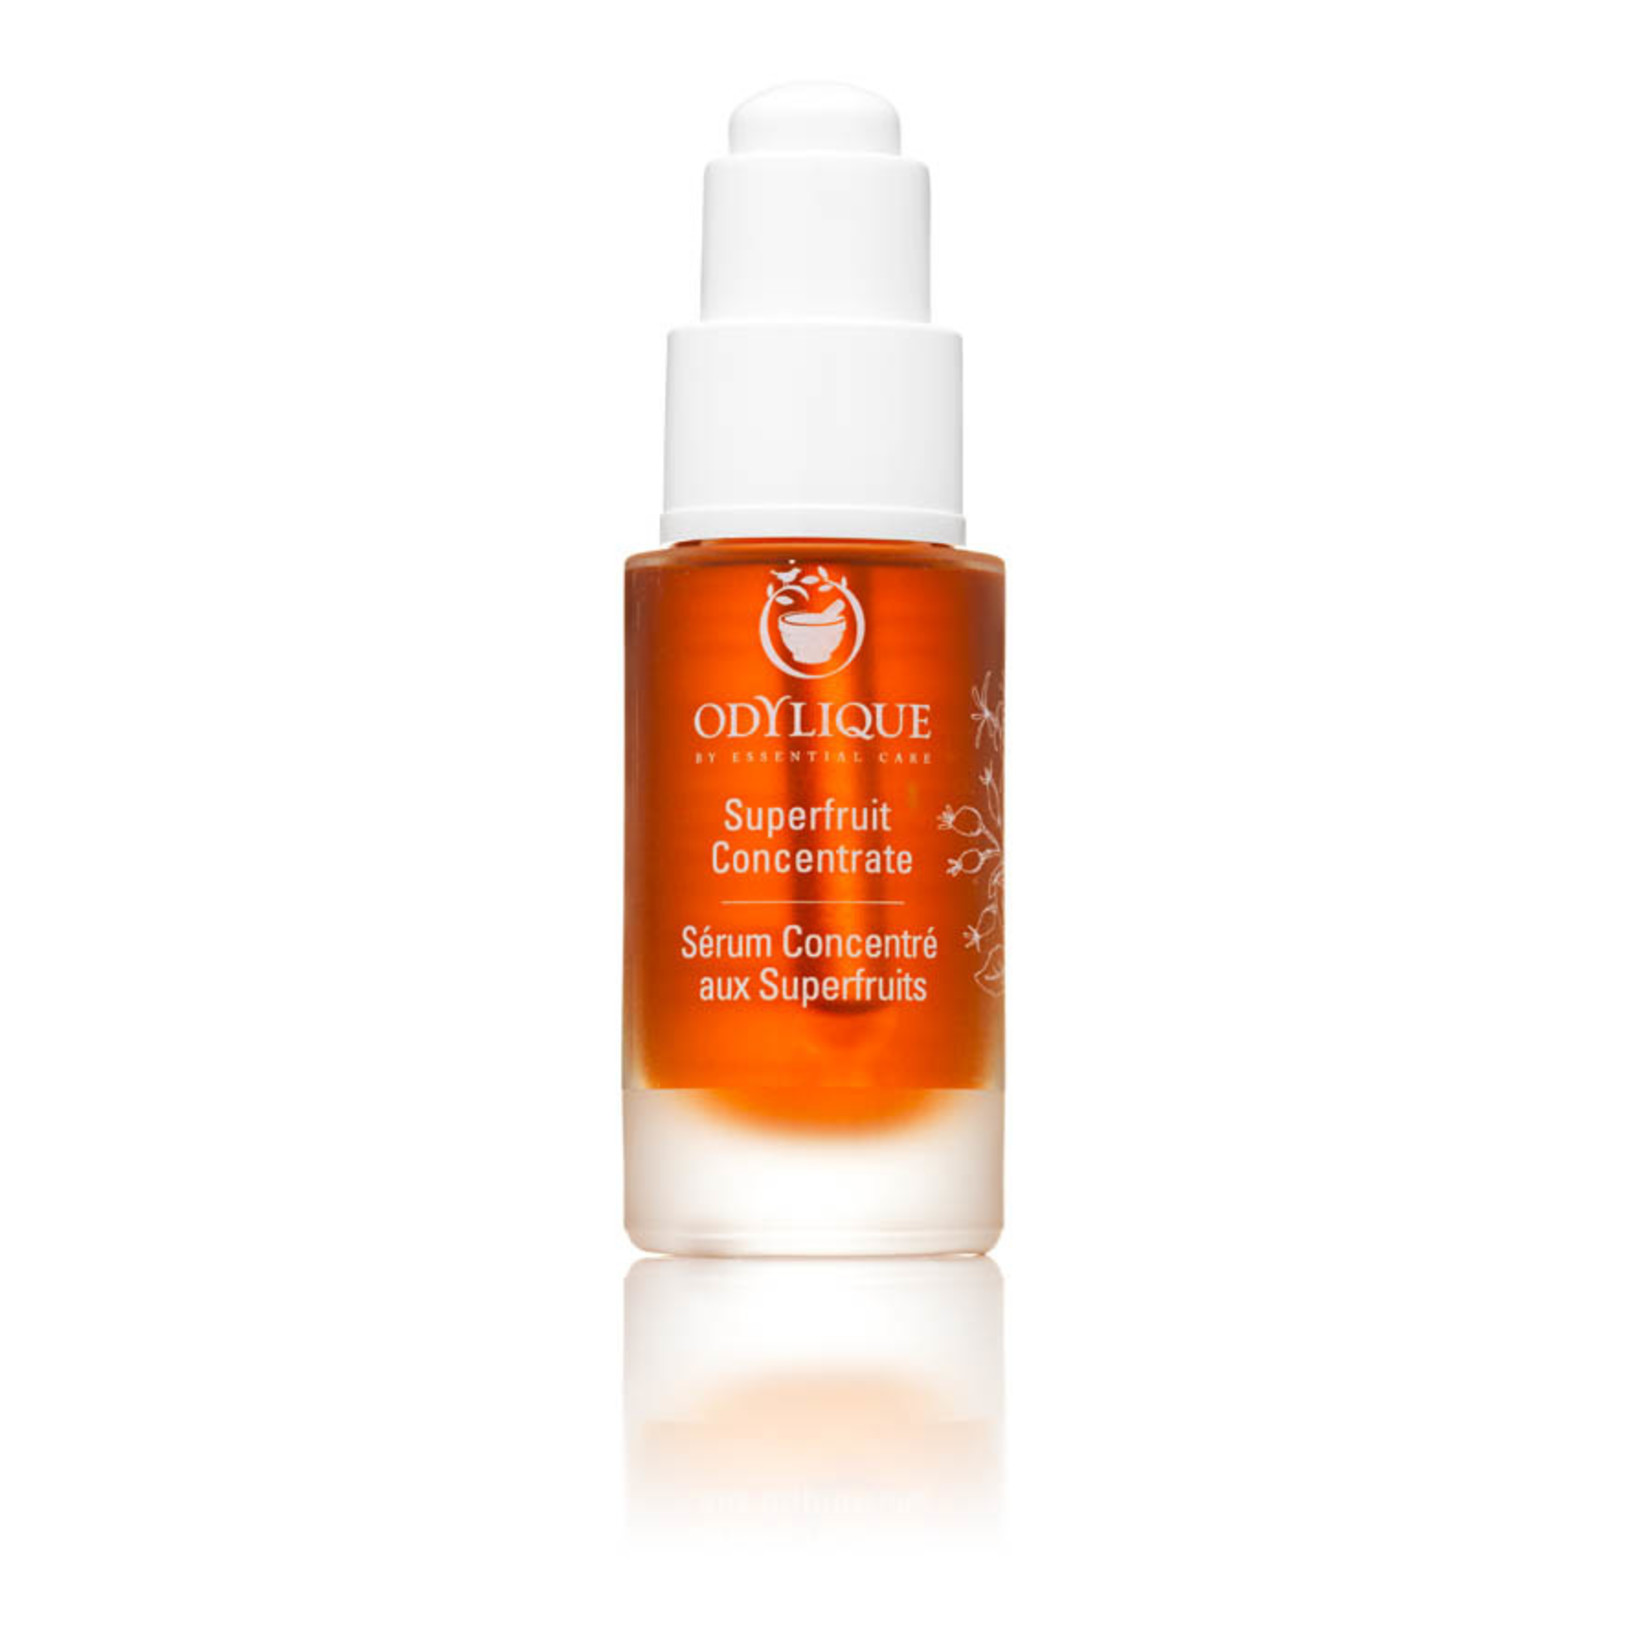 Odylique Superfruit Concentrate Serum Odylique - instant glow!